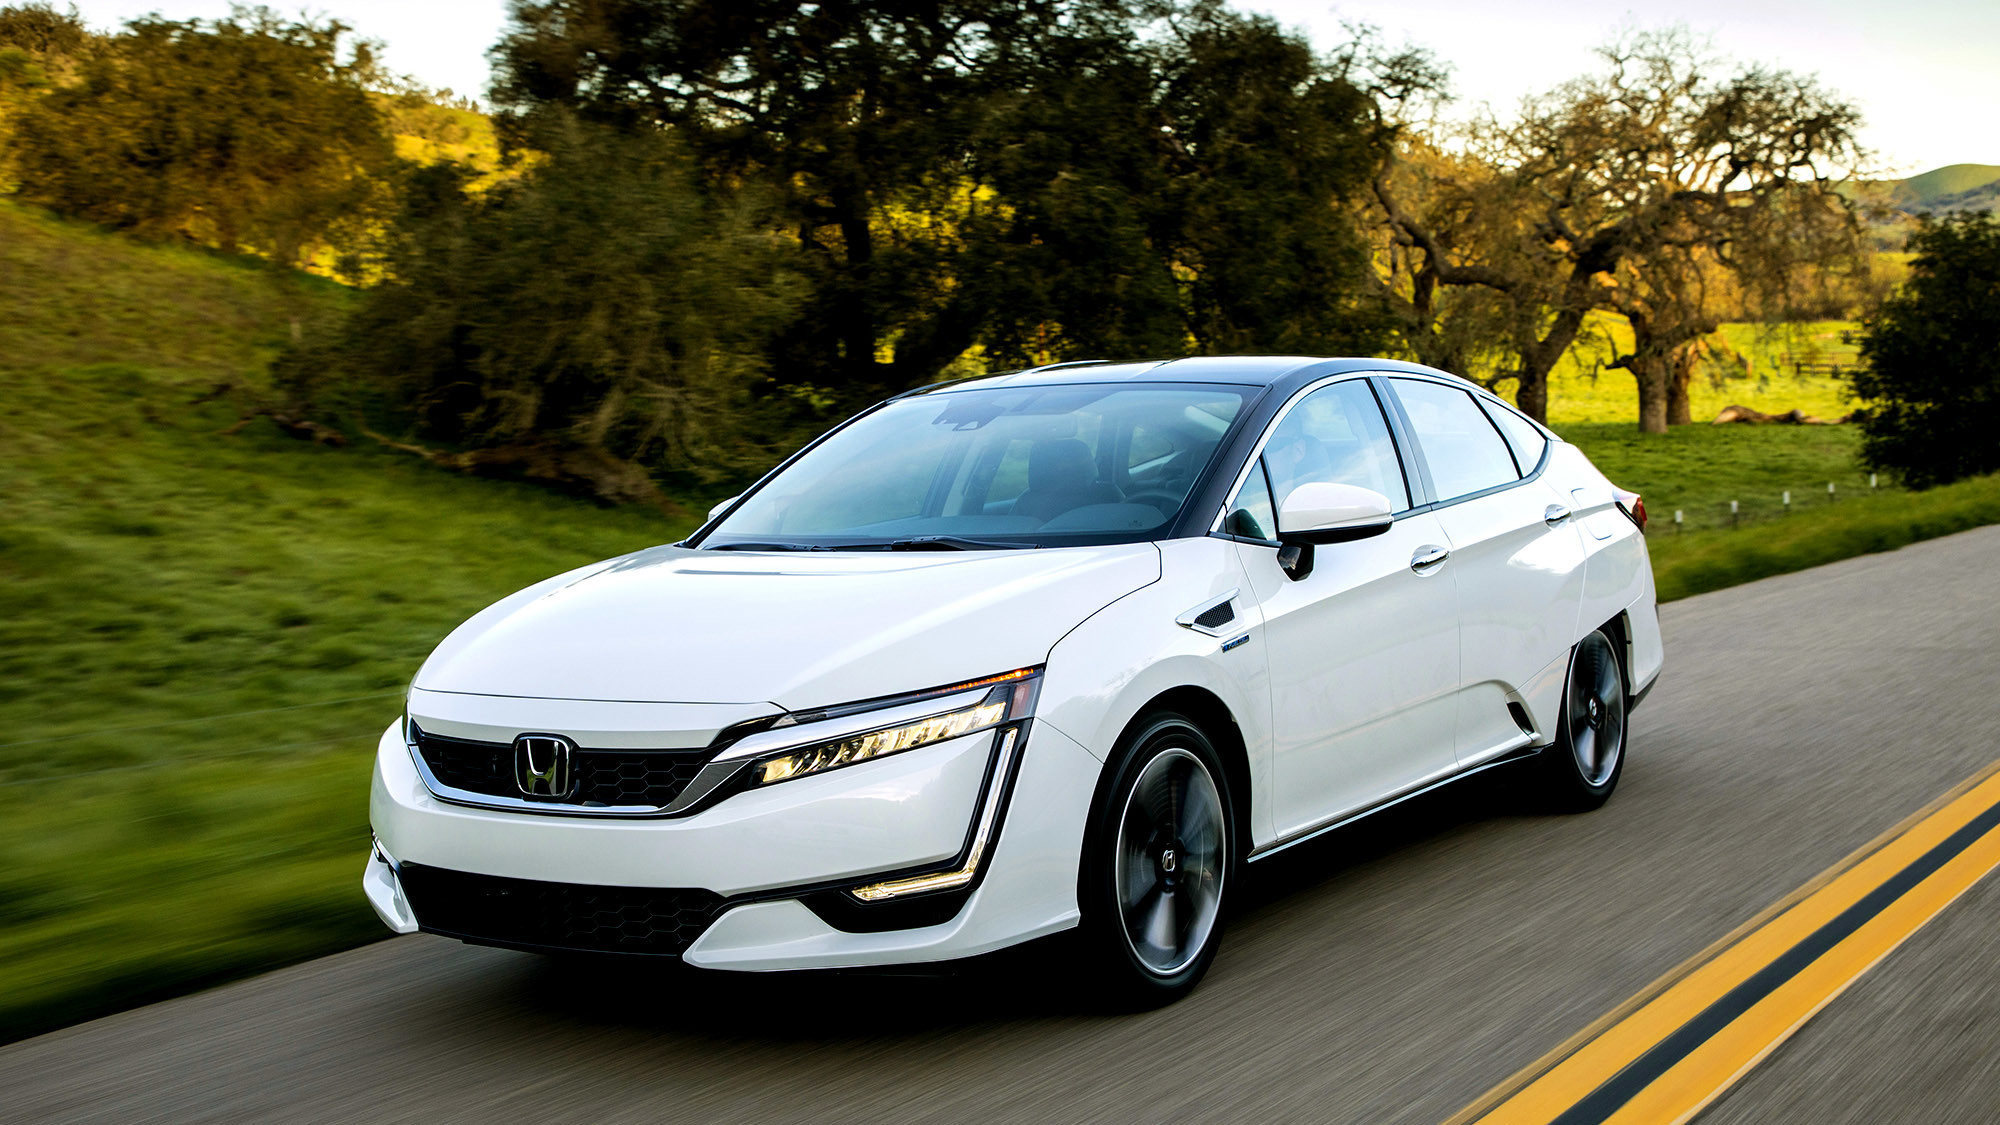 2017 honda clarity a hydrogen fuel cell car that delivers fun la times